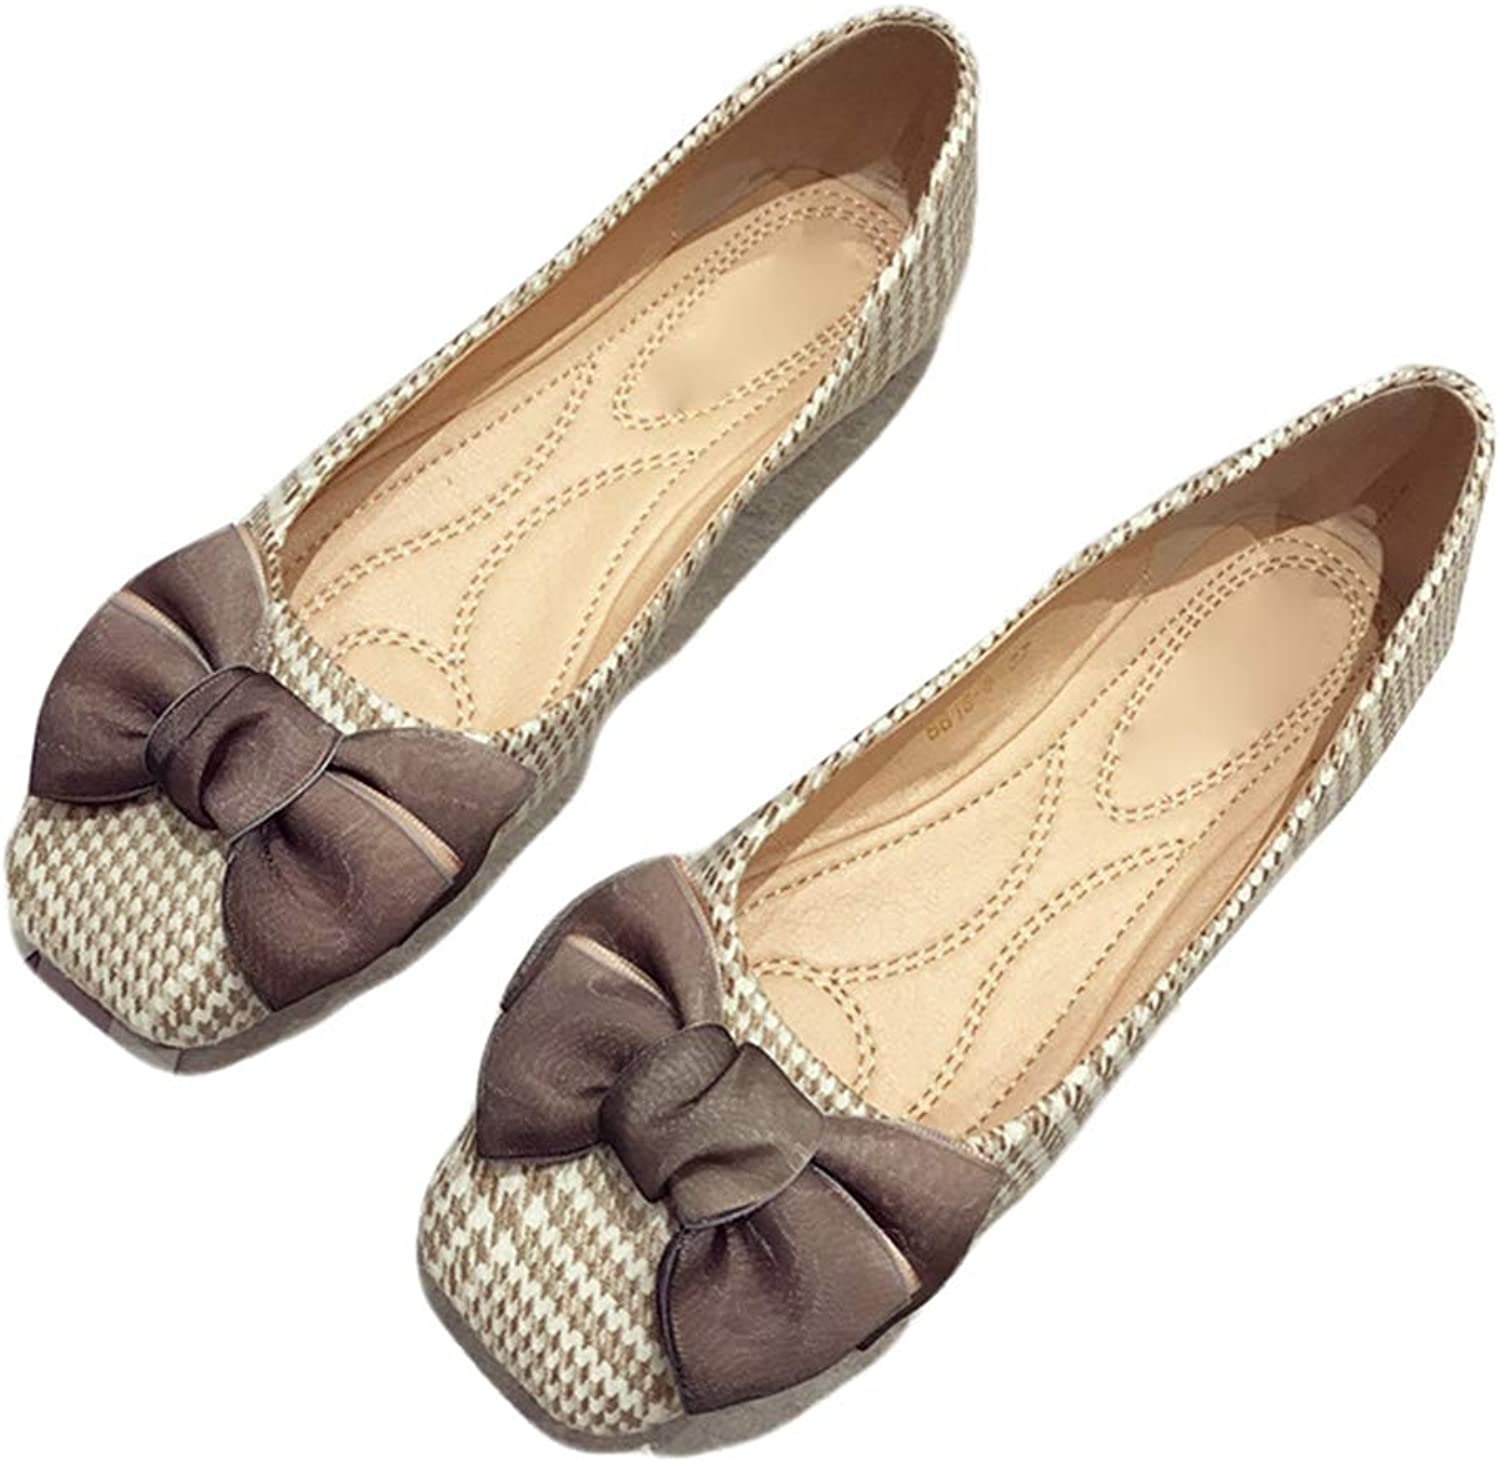 Kyle Walsh Pa Women Ballet Flats shoes Bow-Knot Square Toe Laides Soft Office Driving Footwear